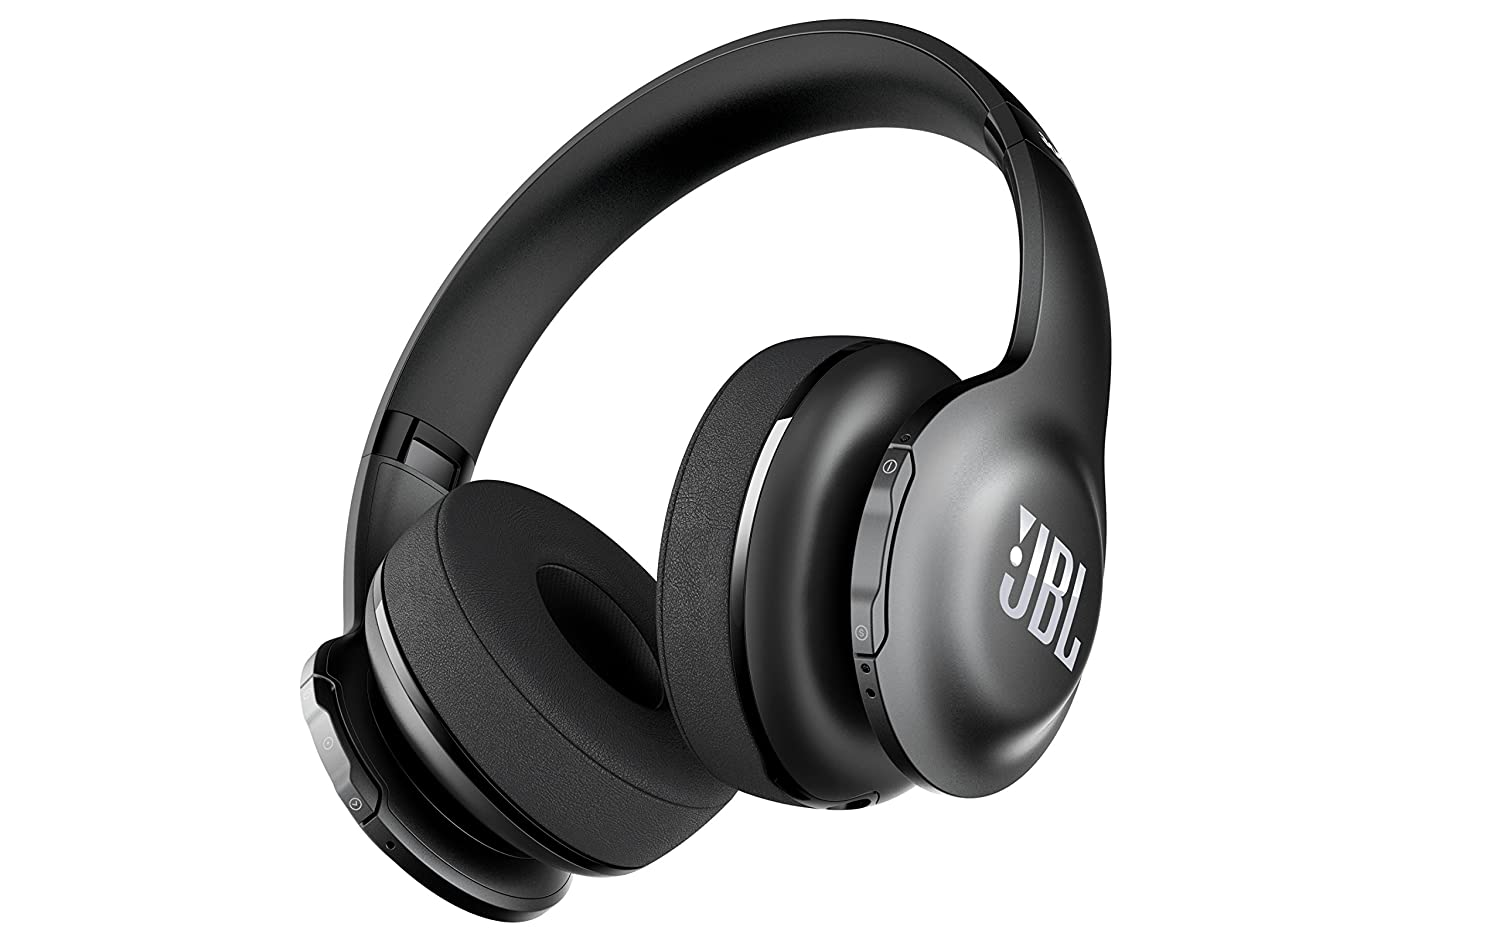 JBL Everest 300 - Auriculares de Diadema Cerrados (Bluetooth, Jack 3.5 mm, 10 Hz-22 kHz, 100 dB), Color Negro: Amazon.es: Electrónica